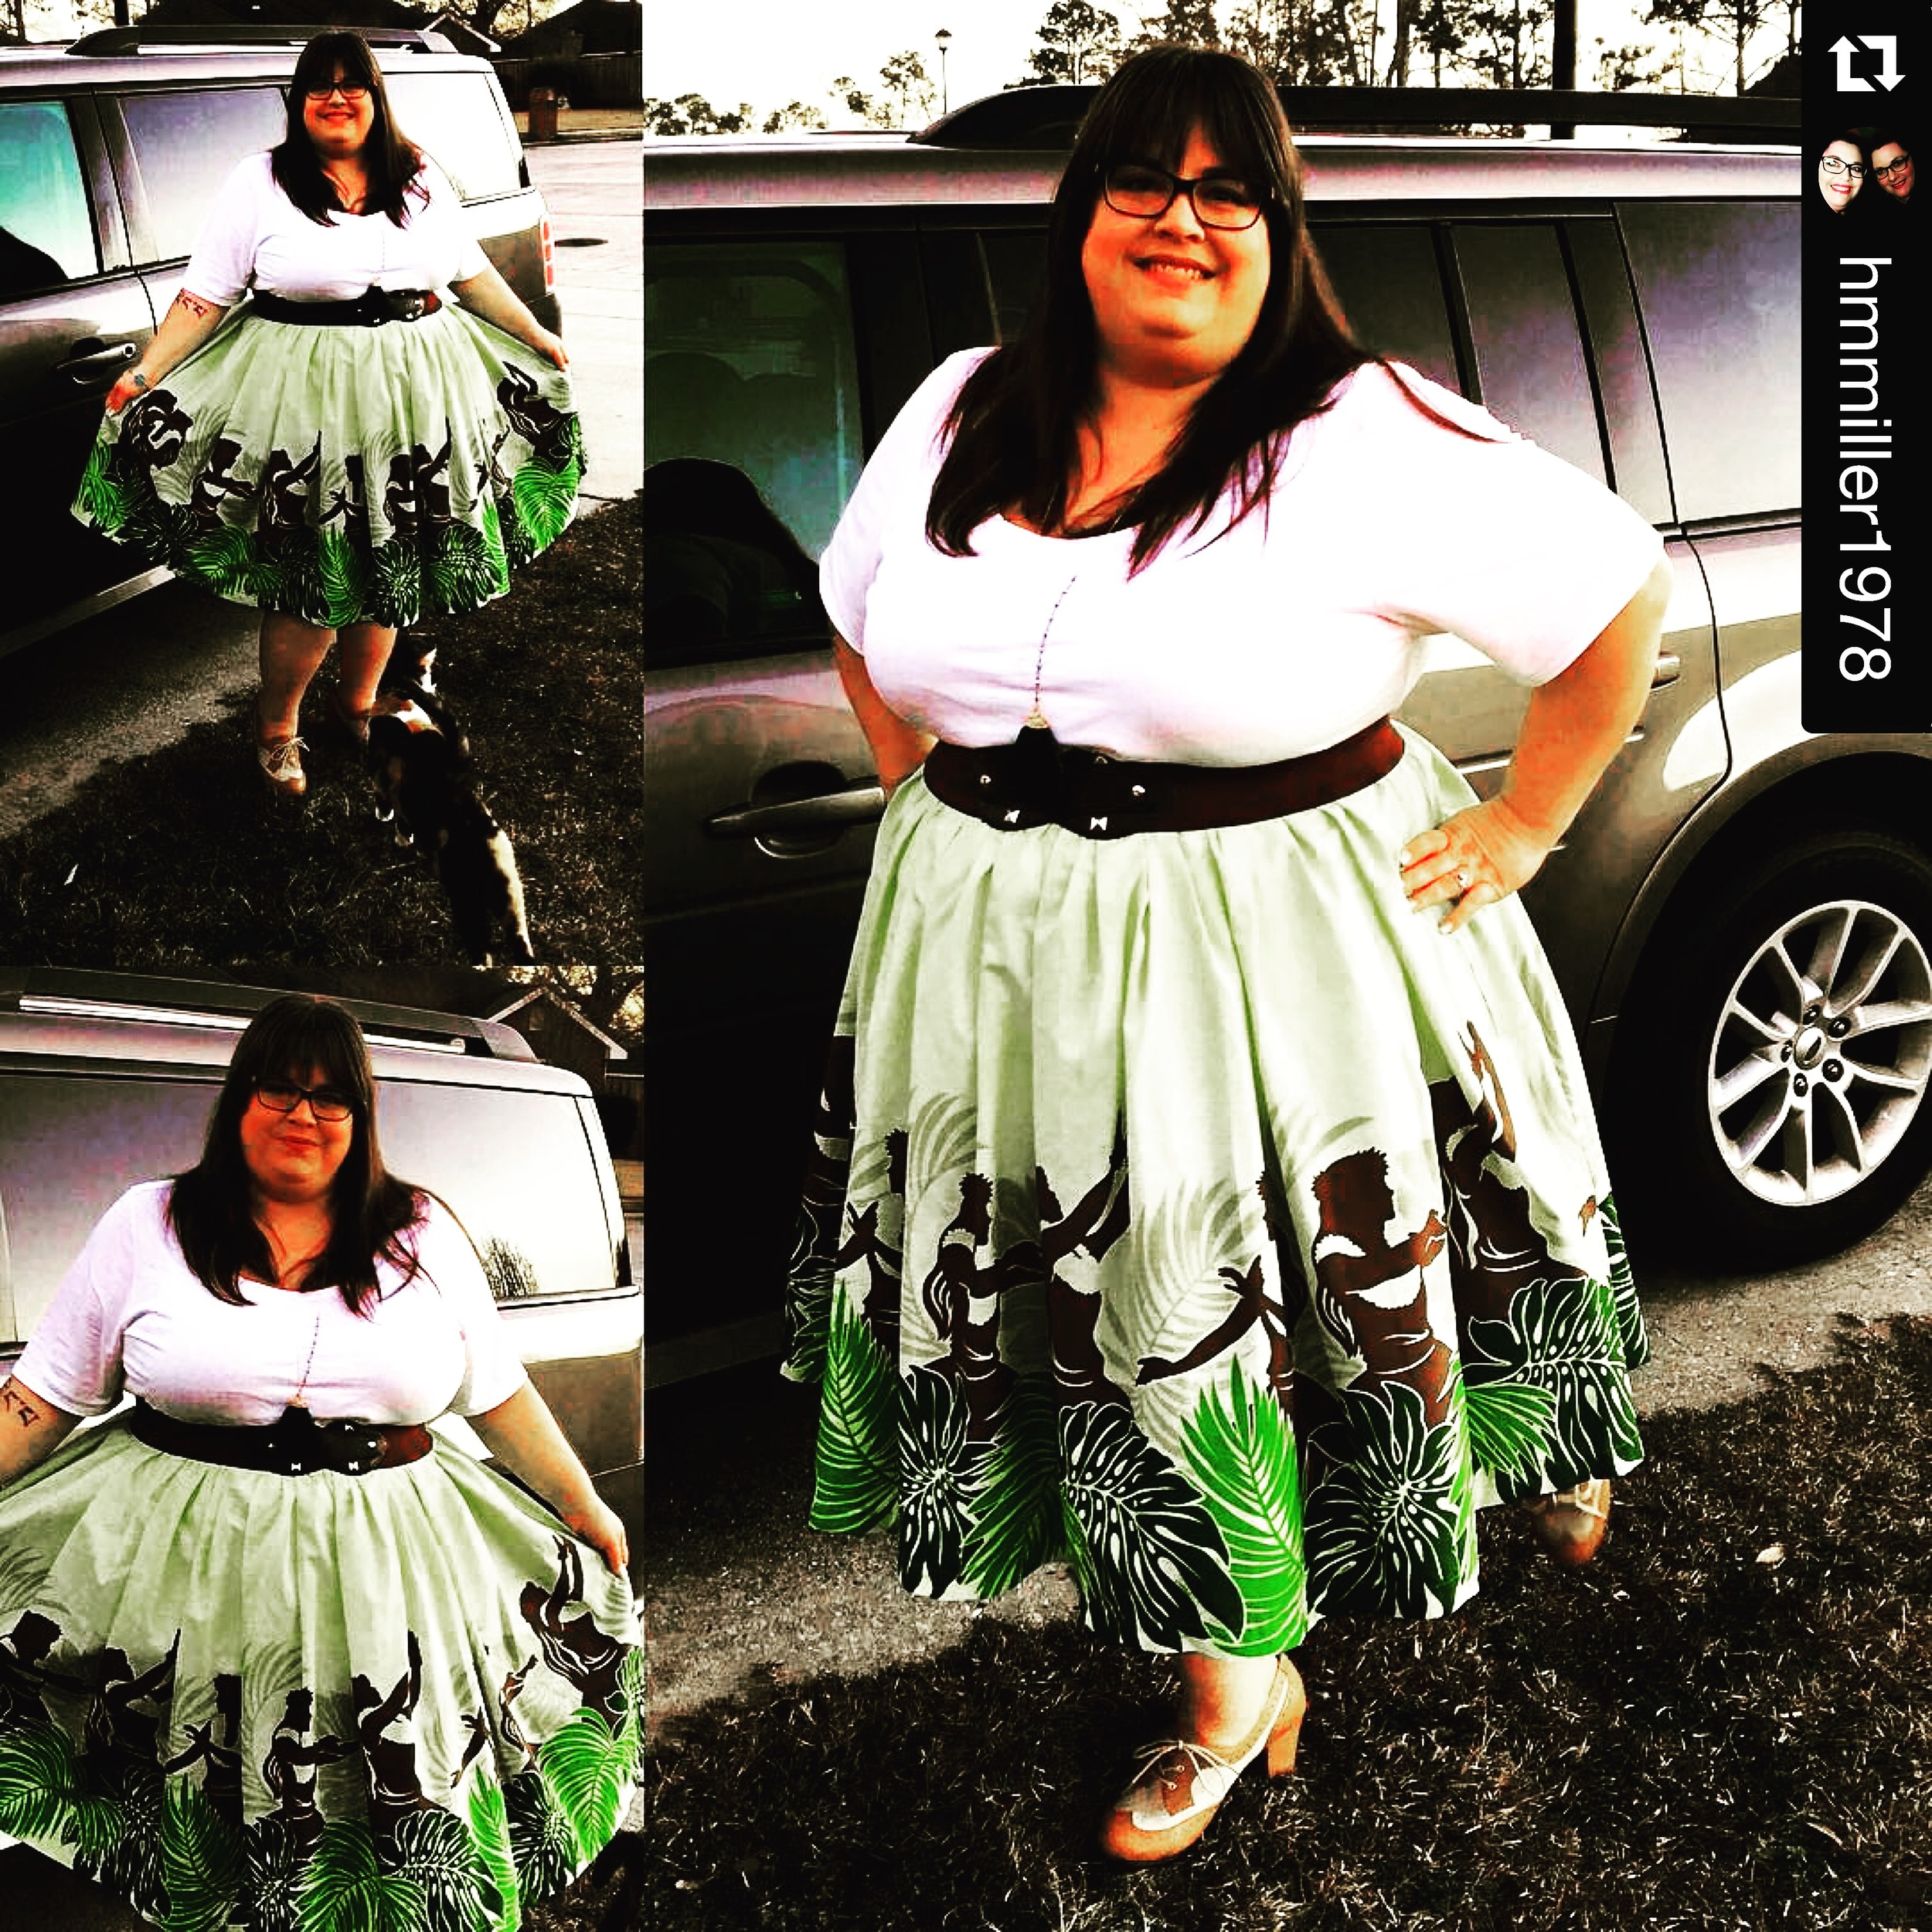 Heather is looking positively radiant in her Chimera's Hula skirt!  Are you ready for your next luau?